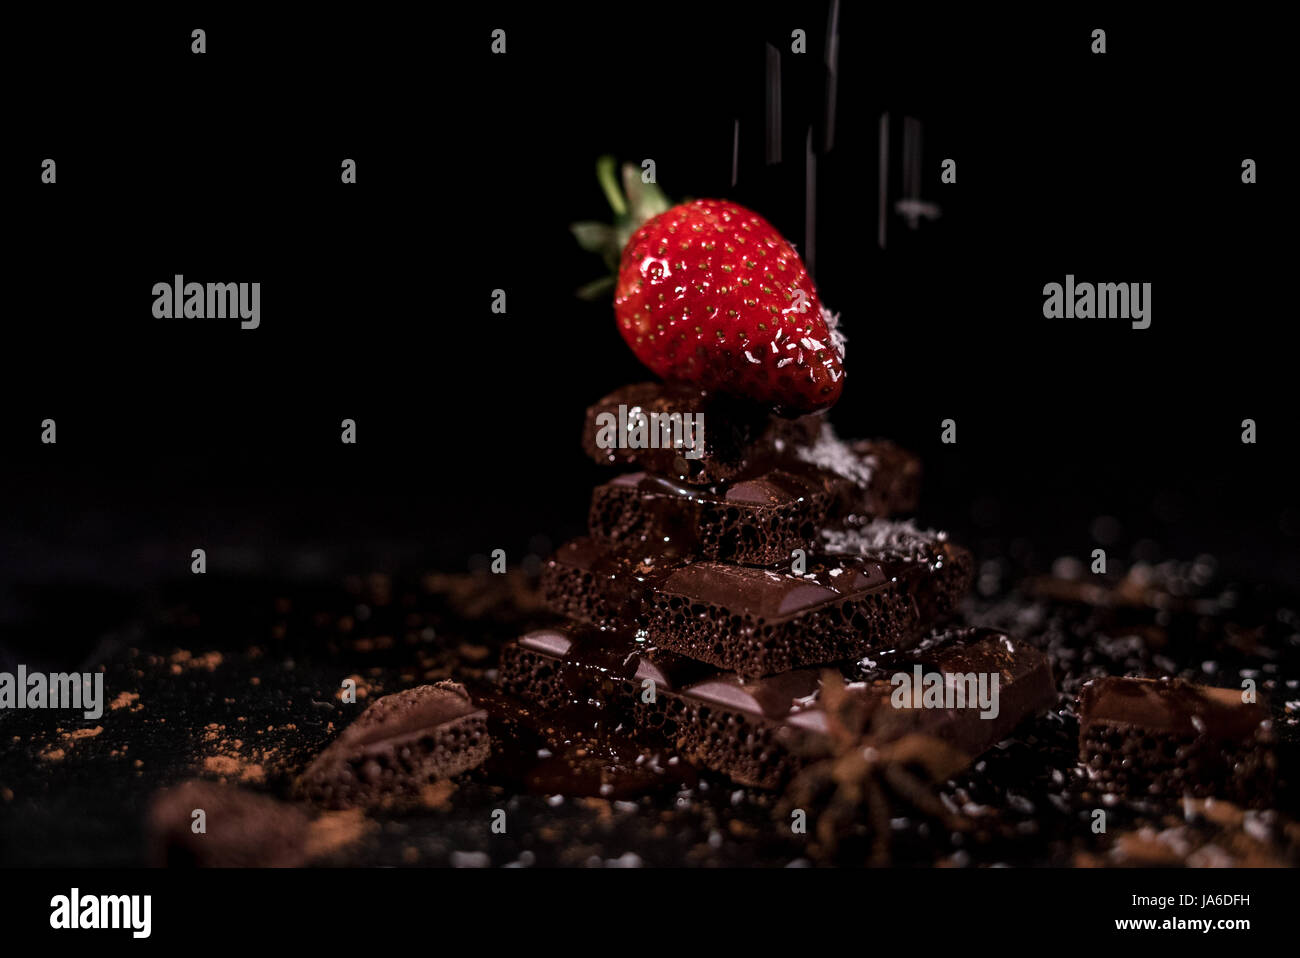 One red straberry on a dark  chocolate, crushed.Coconut chips - Stock Image